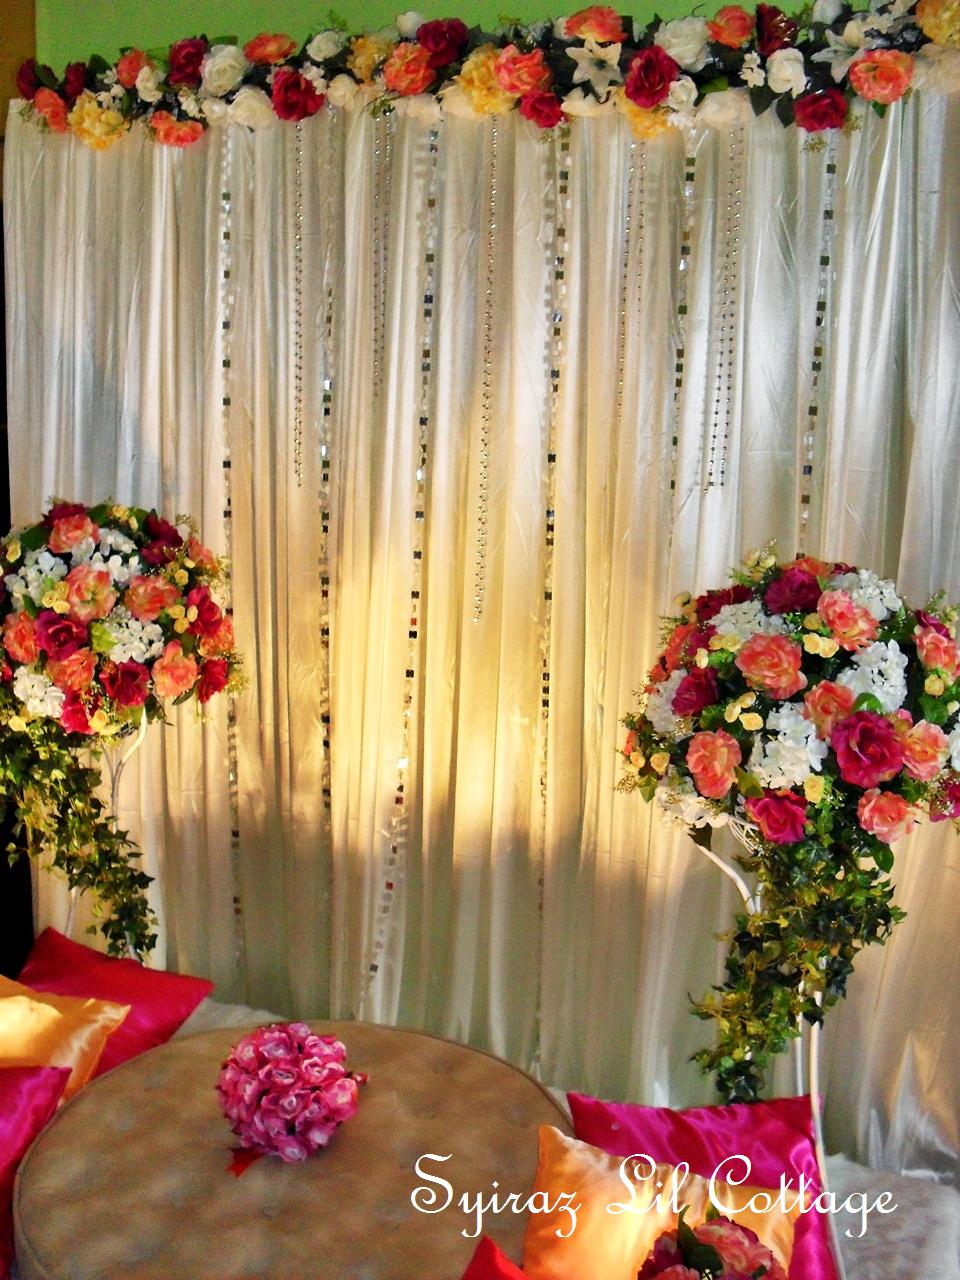 P S We Manage To Do Other Style Mini Pelamin Will Design It For You Sure